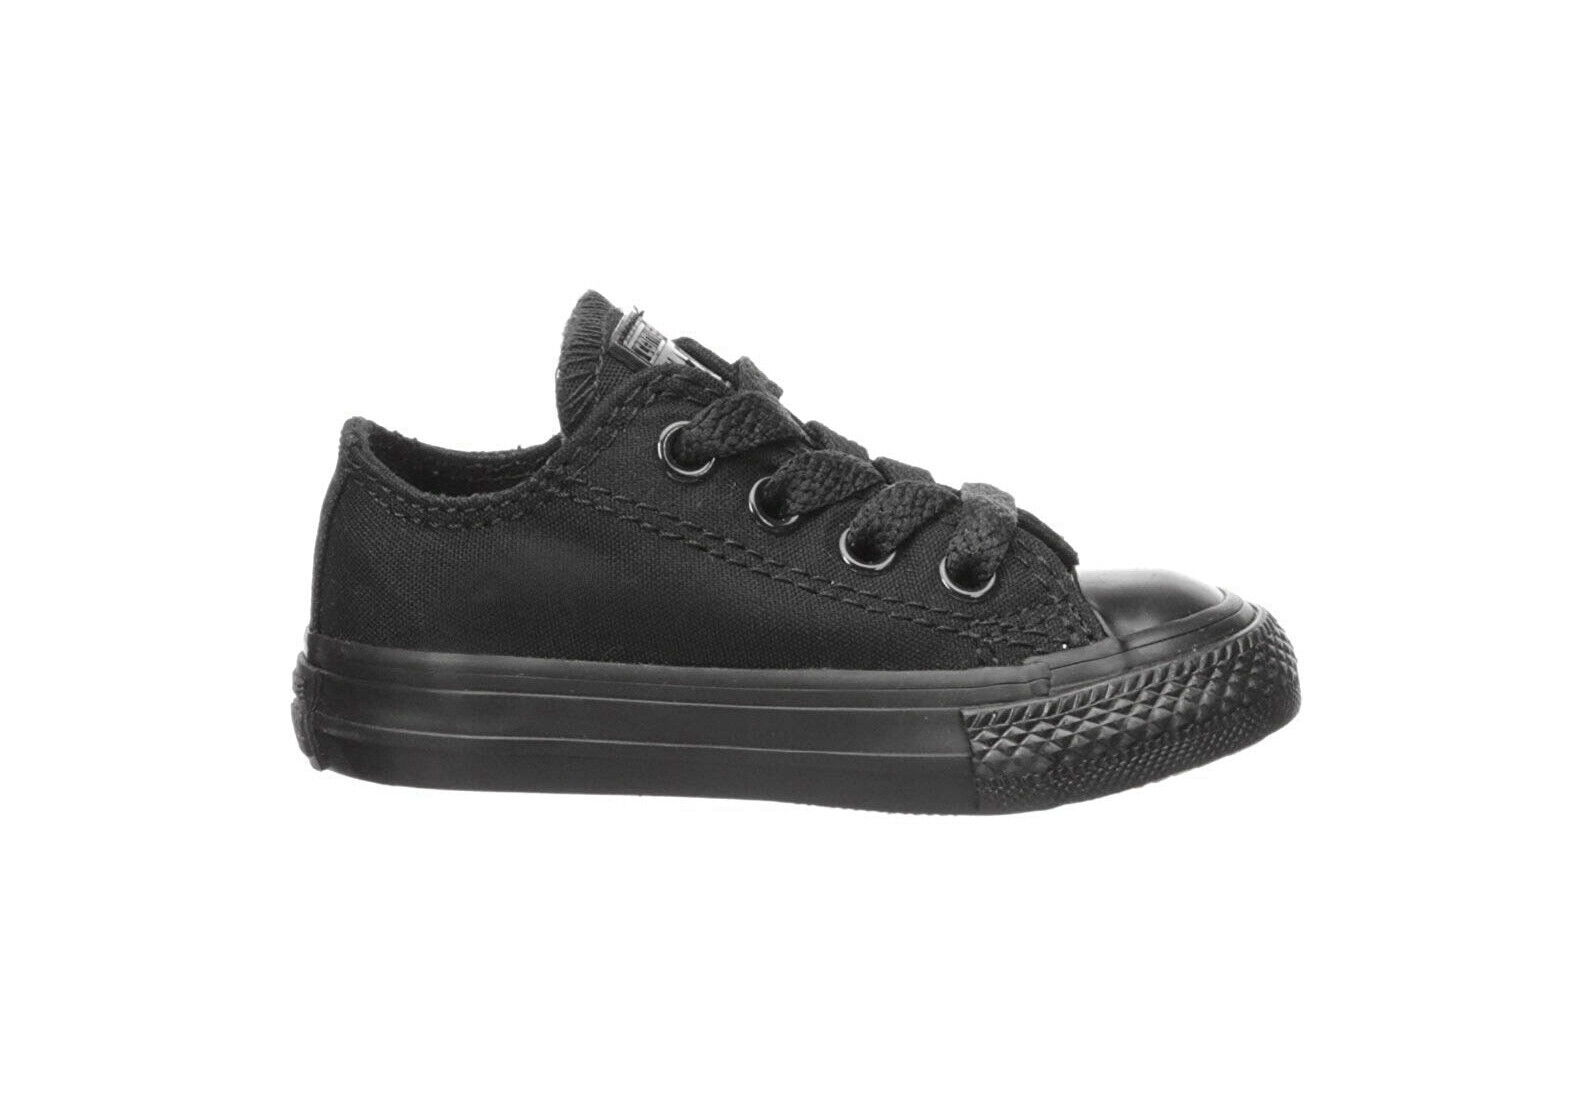 Converse All Star Low Chucks Infant Toddler All Black Canvas Girl Shoes 714786F 1